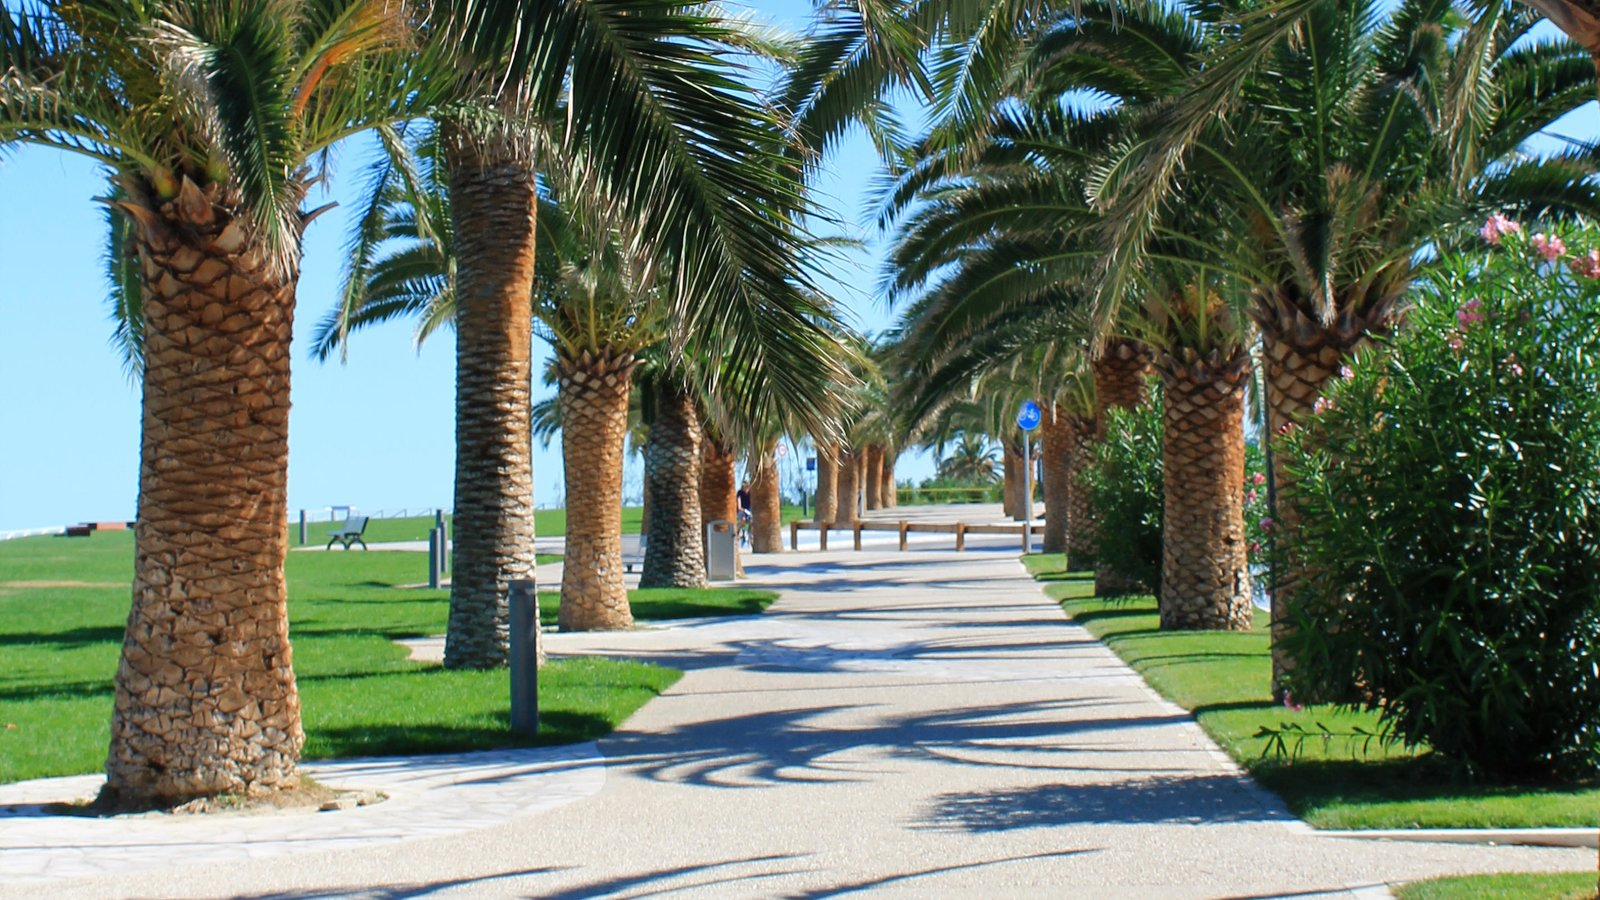 San Benedetto del Tronto featuring tropical scenes and a park